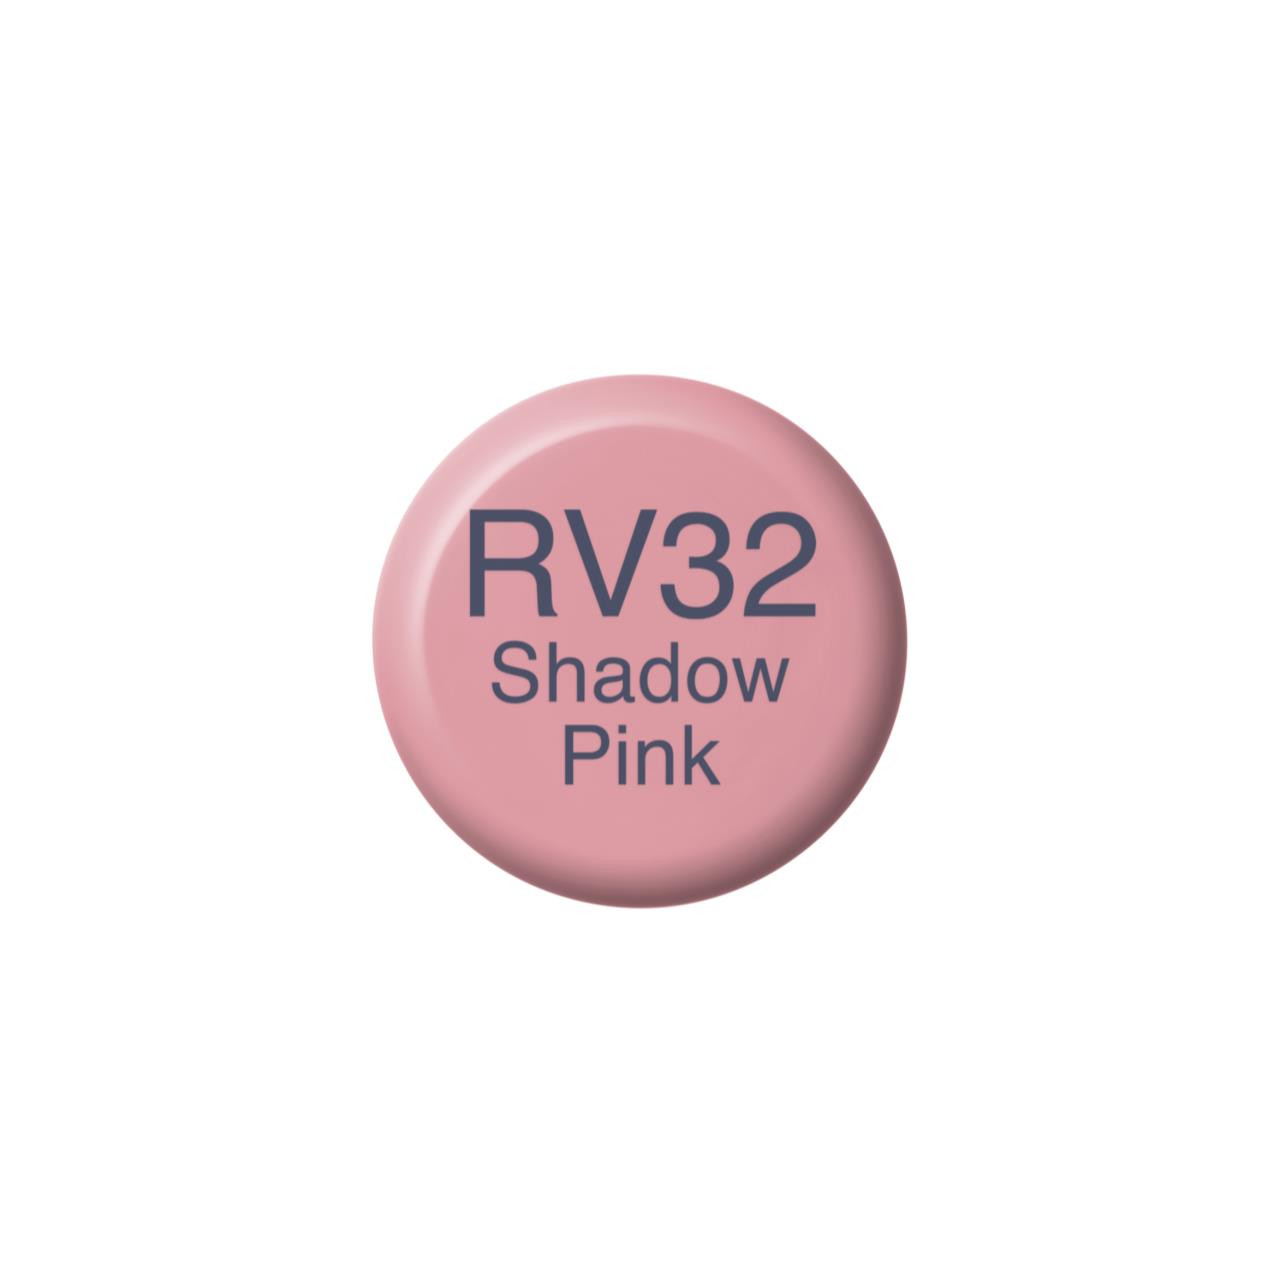 RV32 Shadow Pink, Copic Ink - 4511338057834